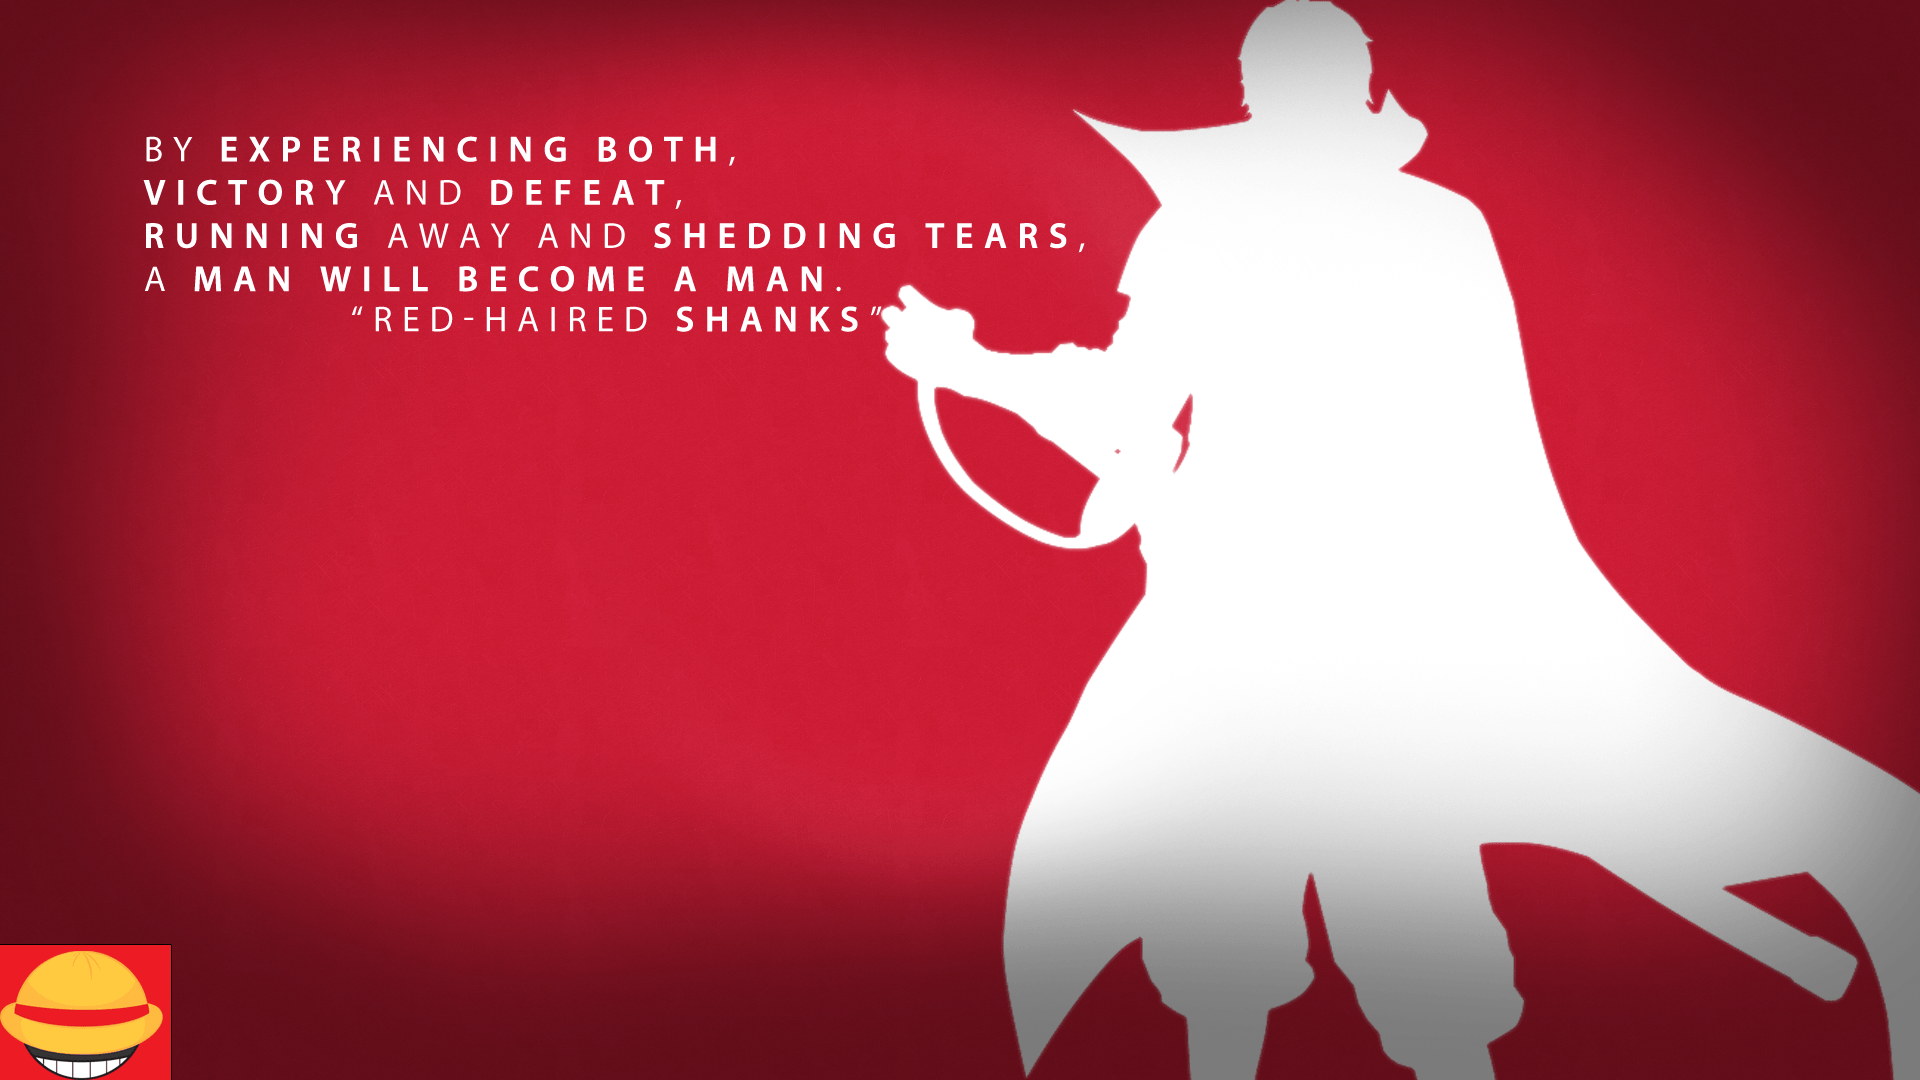 Red Haired Shanks Quote Hd Wallpaper Hintergrund 1920x1080 Id